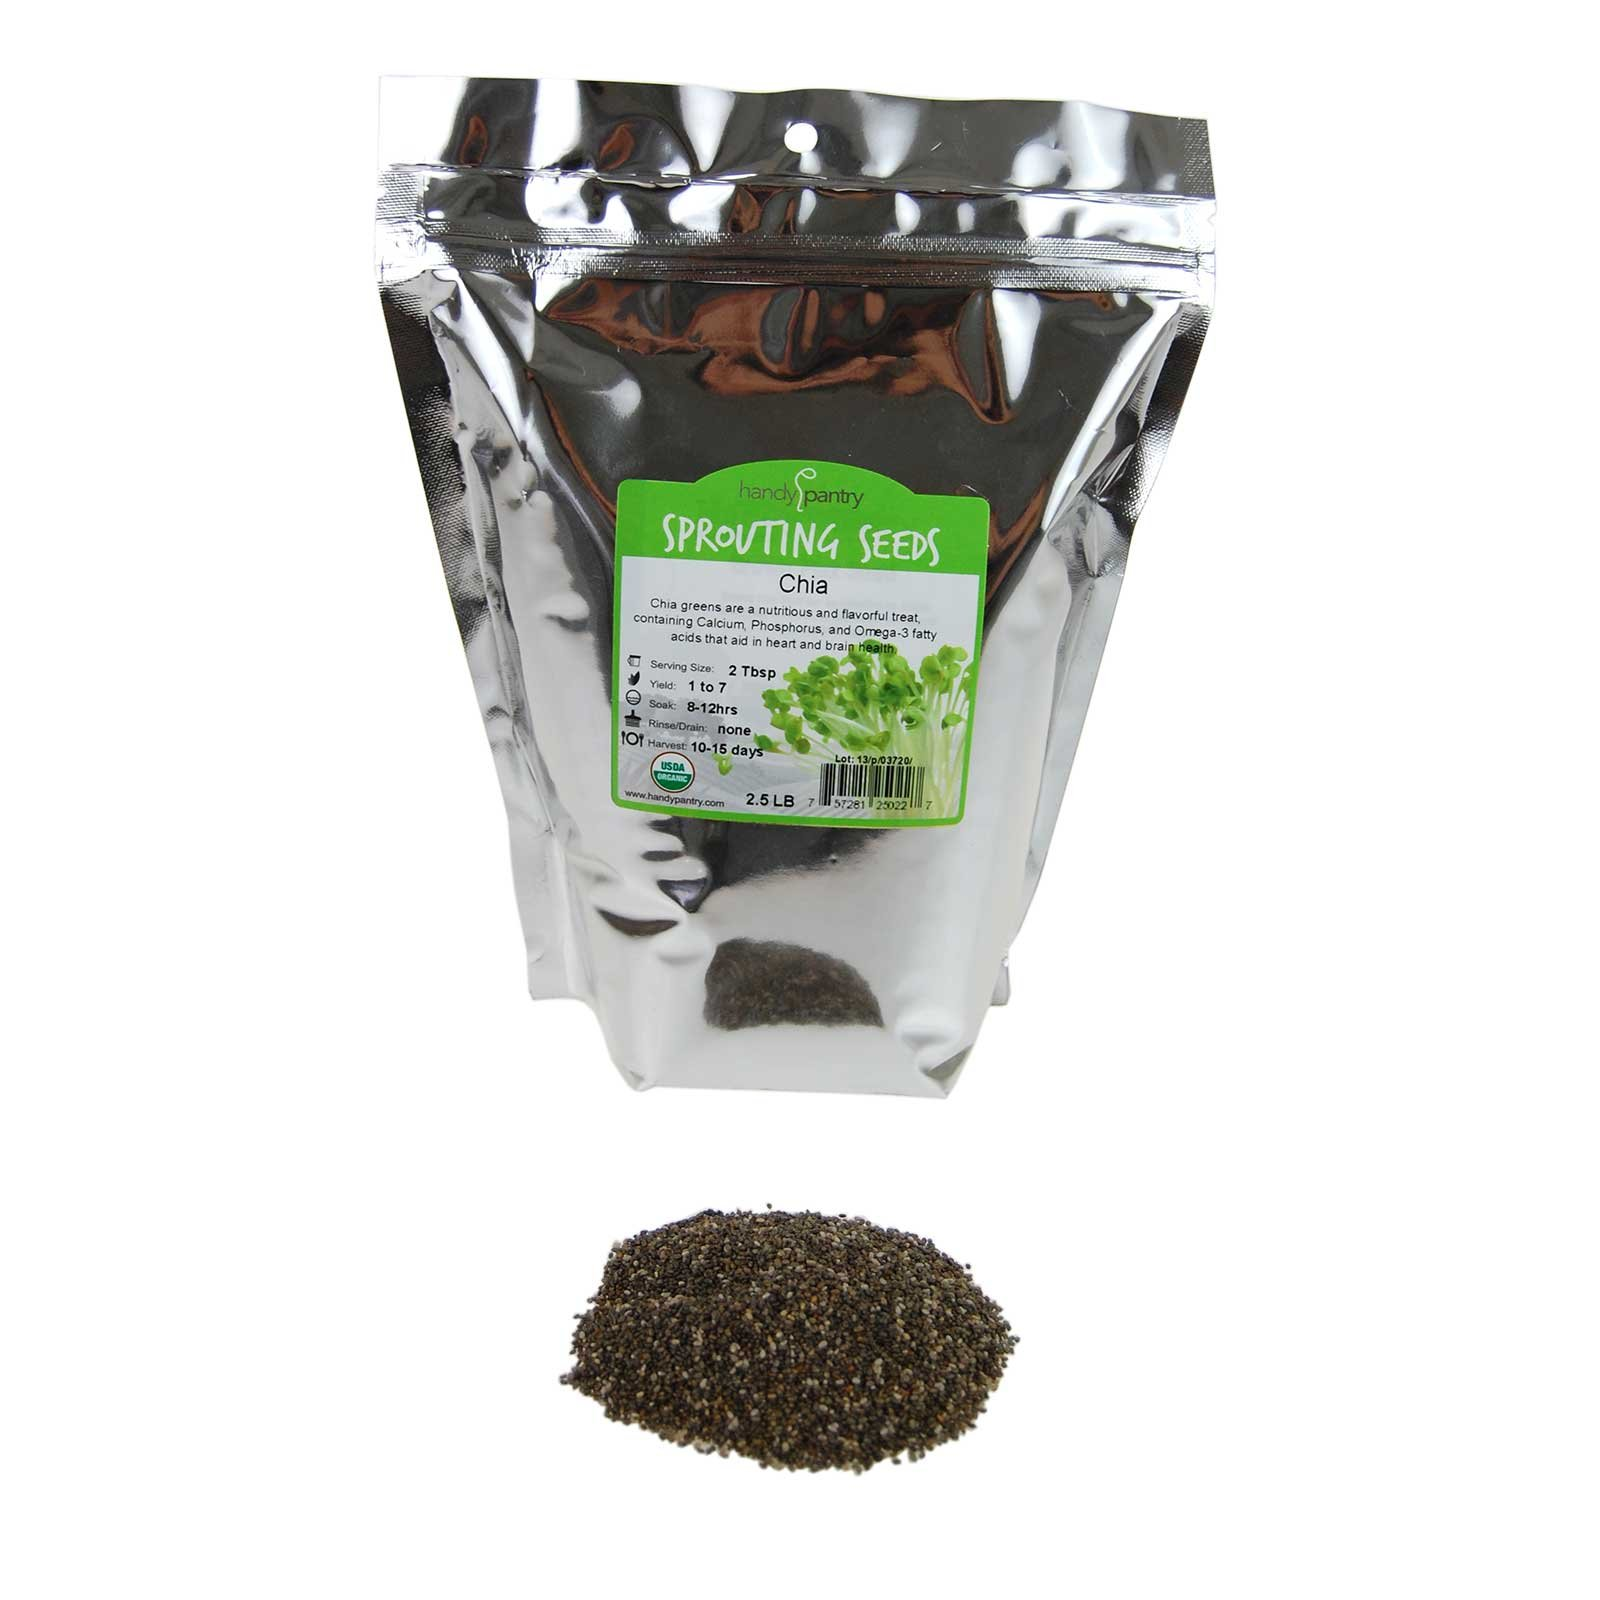 Organic Chia Seeds - 2.5 Lbs - Black Chia Sprouting Seeds For Growing Sprouts, Microgreens Chia Pet Refills, Food Storage, Sprout Salad